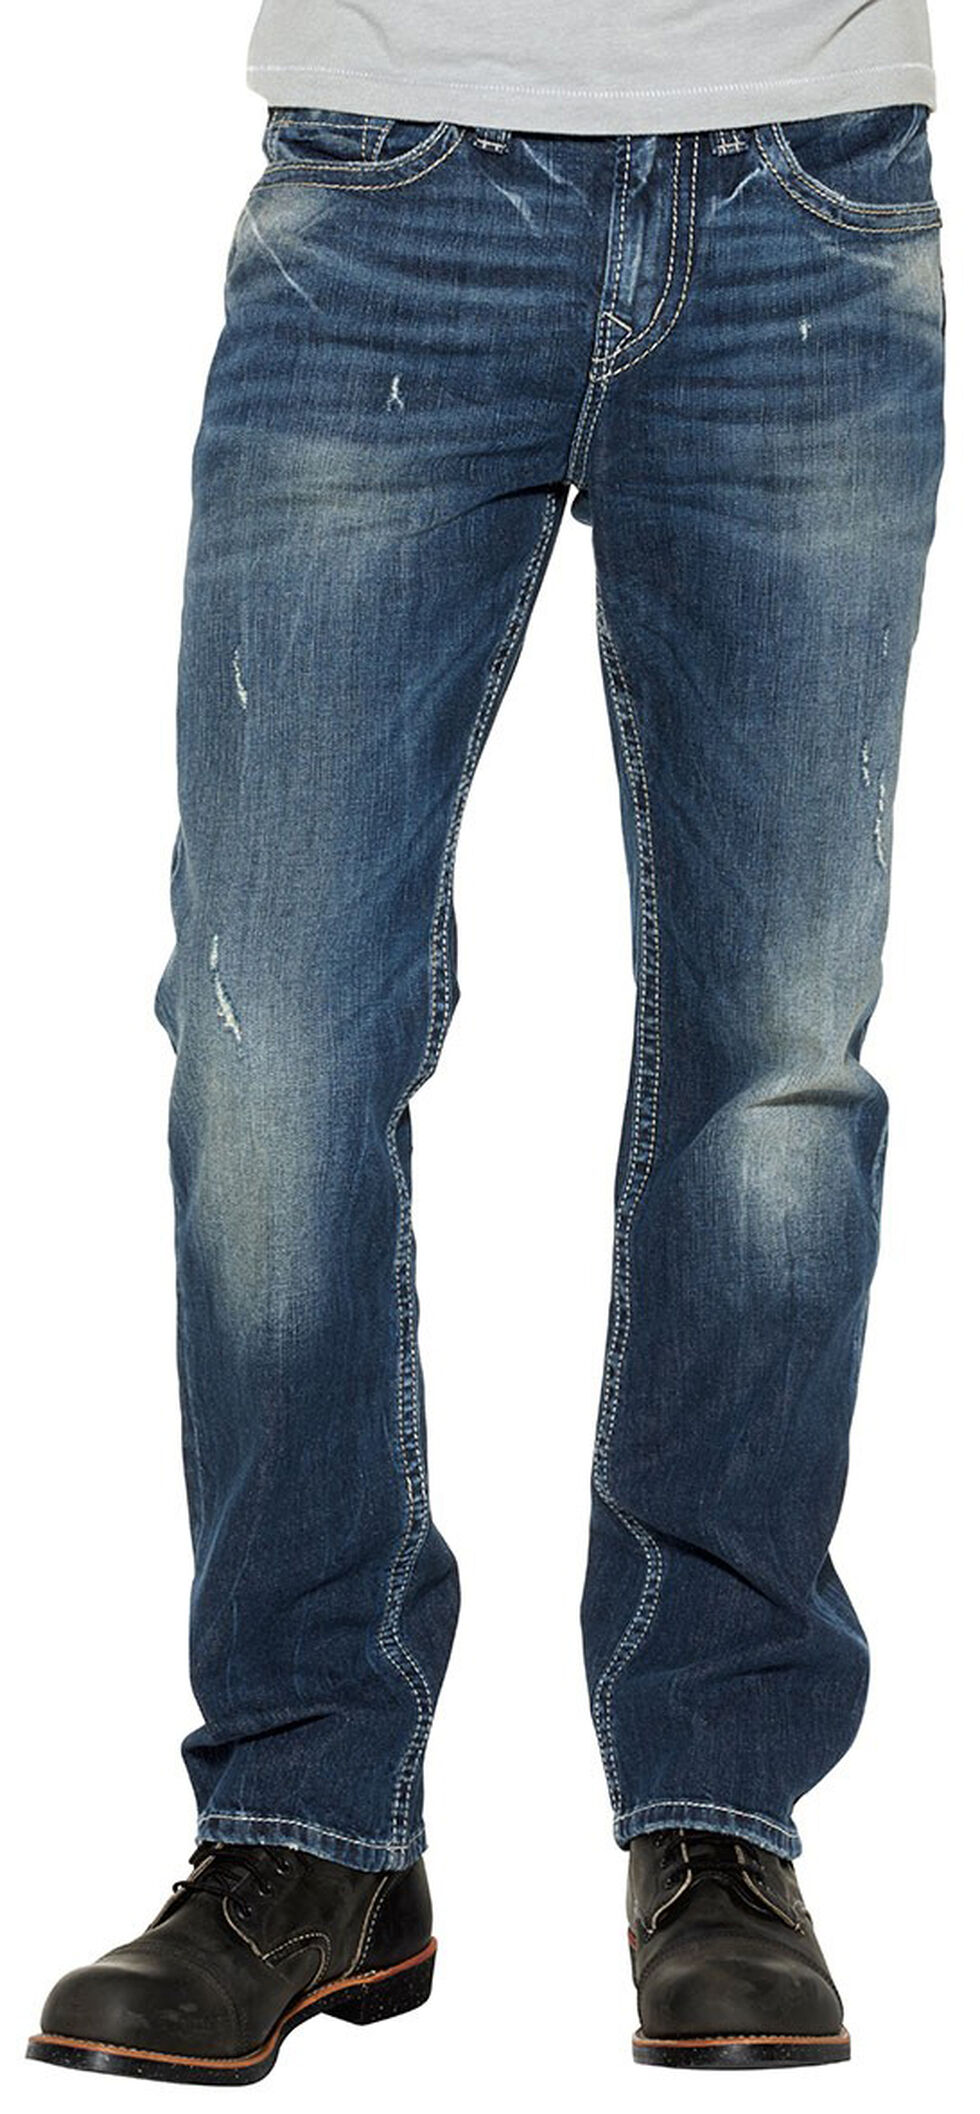 Silver Men's Grayson Easy Fit Straight Jeans, Indigo, hi-res